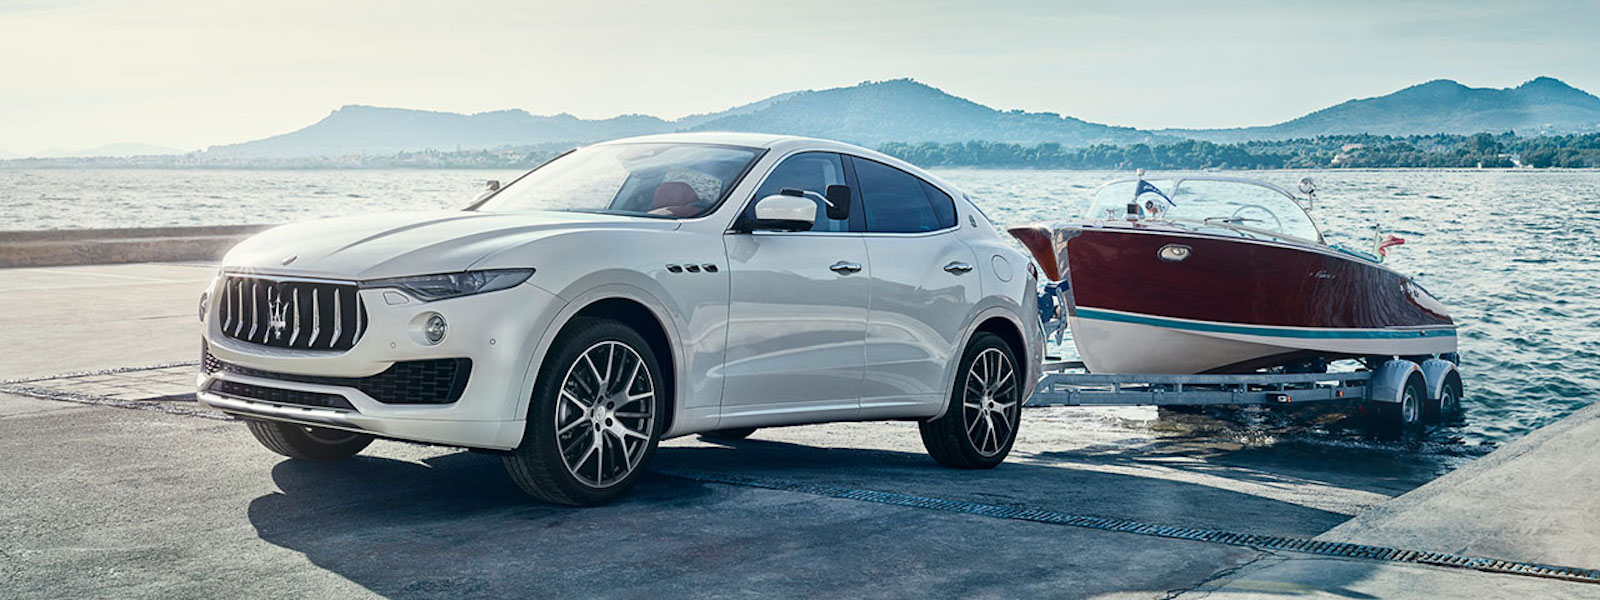 maserati has entered the suv segment, worrying the competition